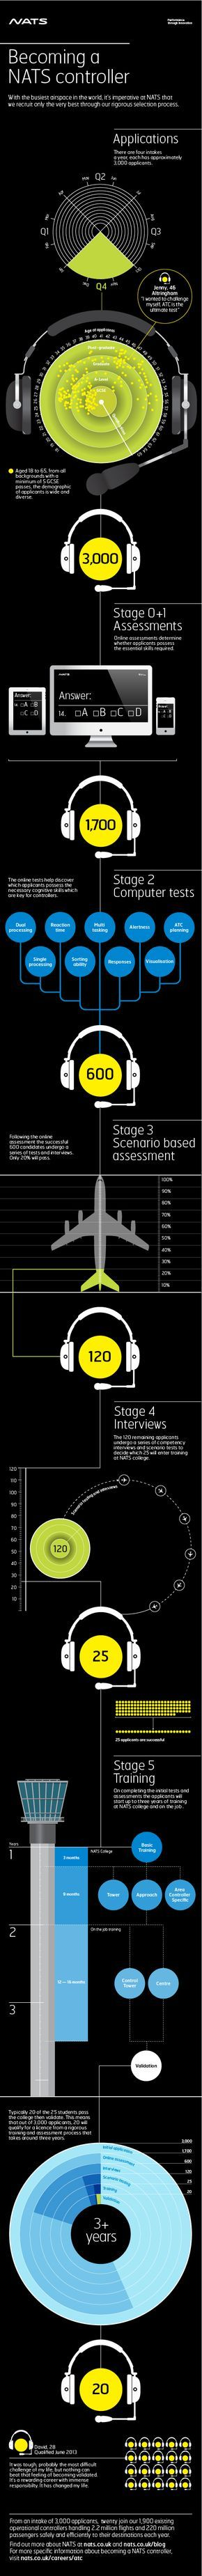 It takes a special person to be a fully validated Air Traffic Controller #ATCO. This infographic will show how special you have to be to make it through the selection process.